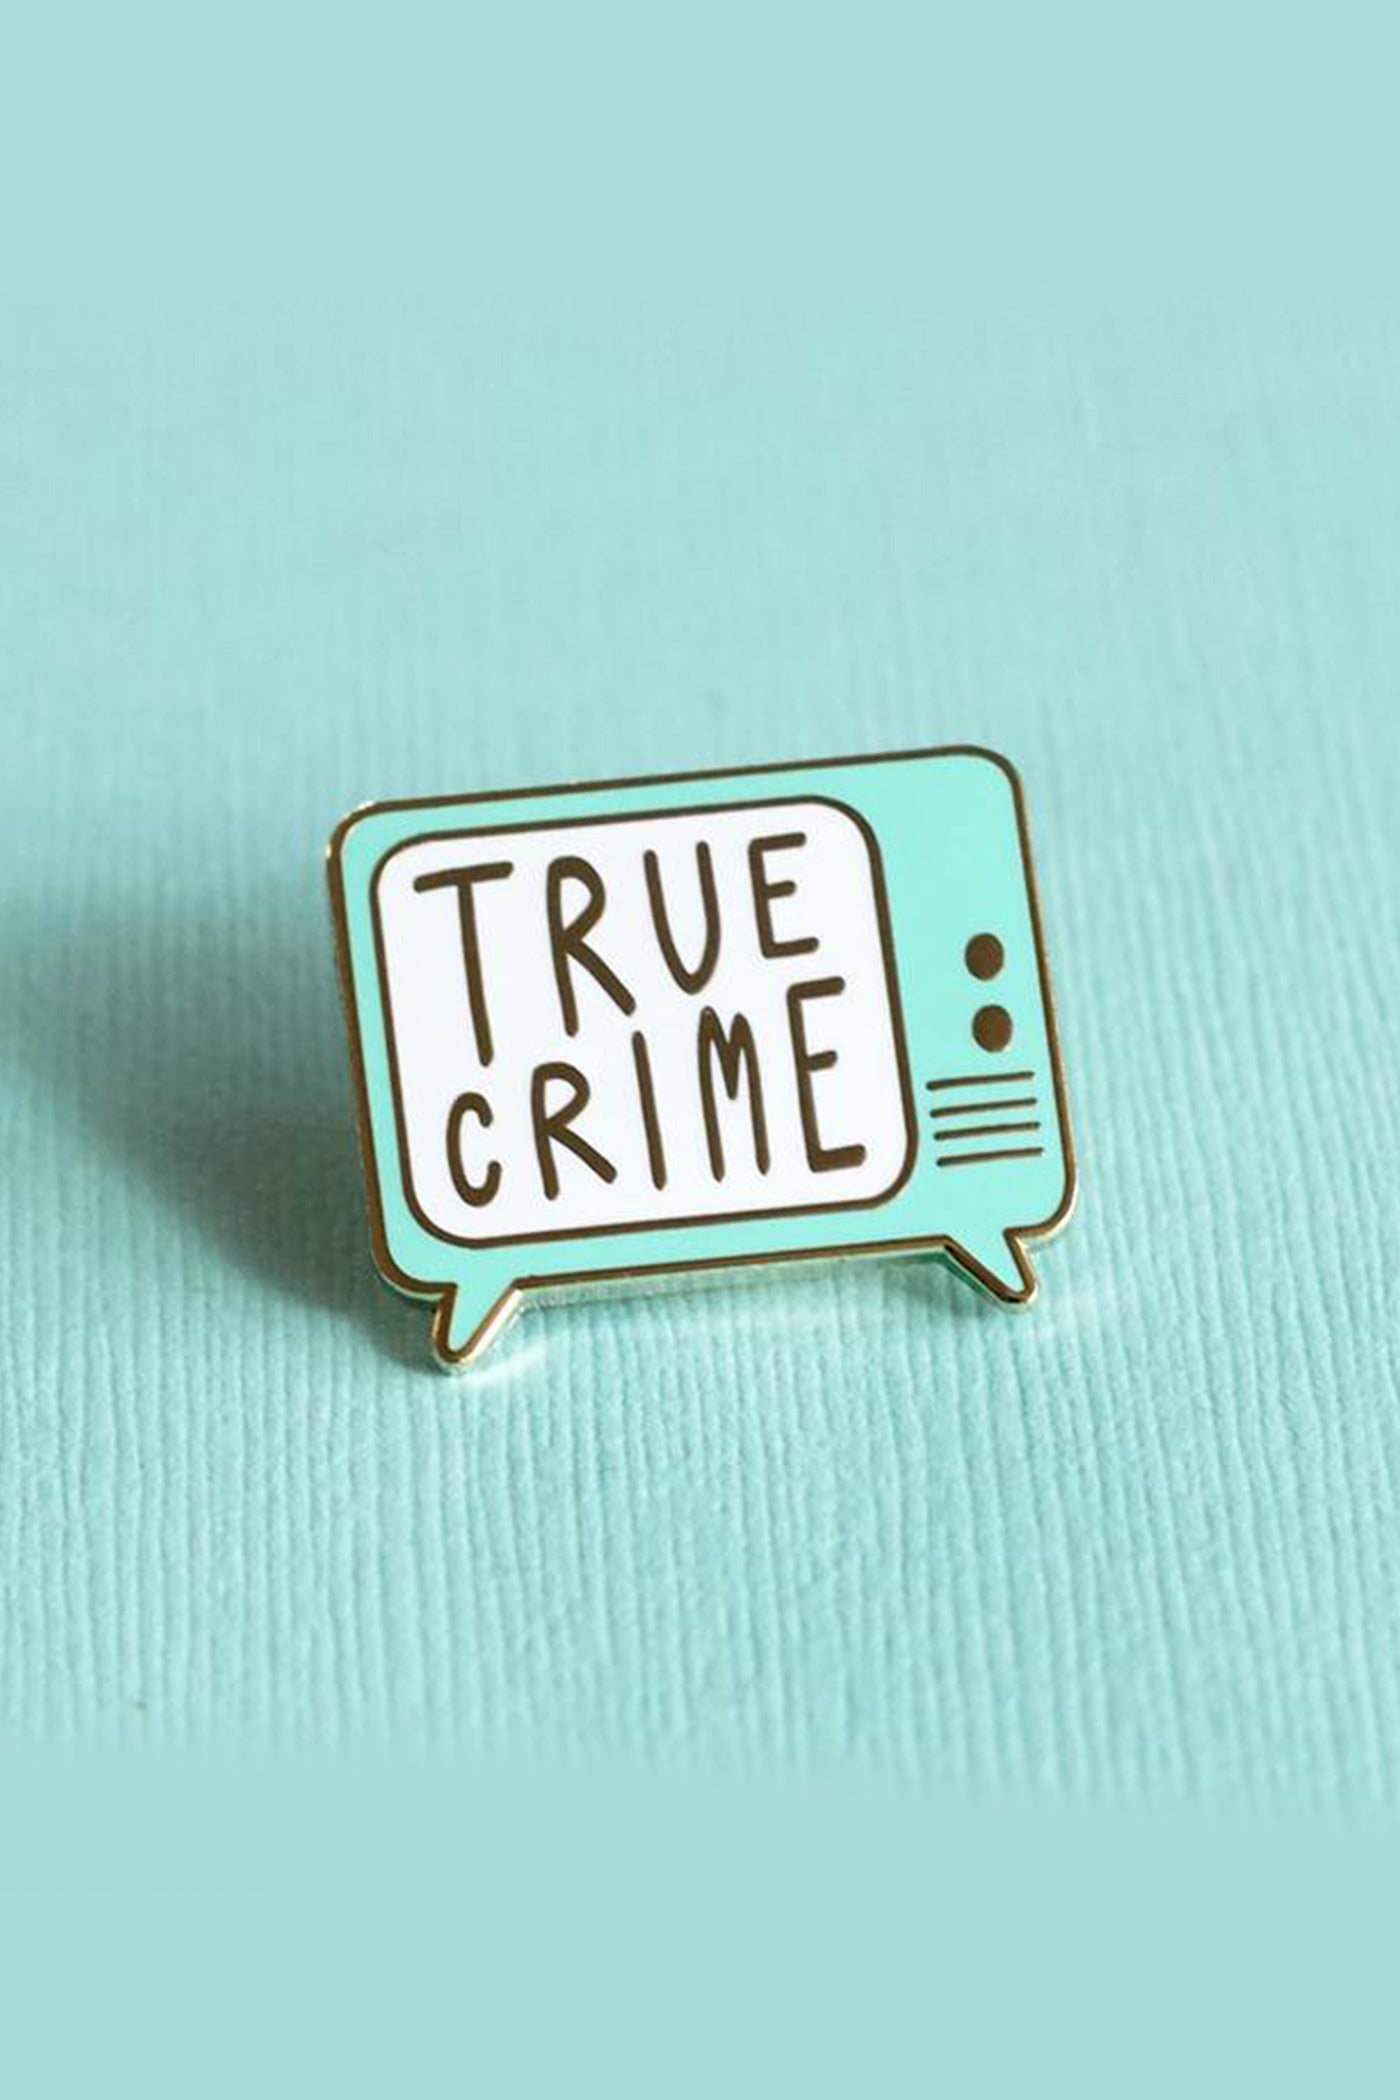 True Crime Pin by For Good